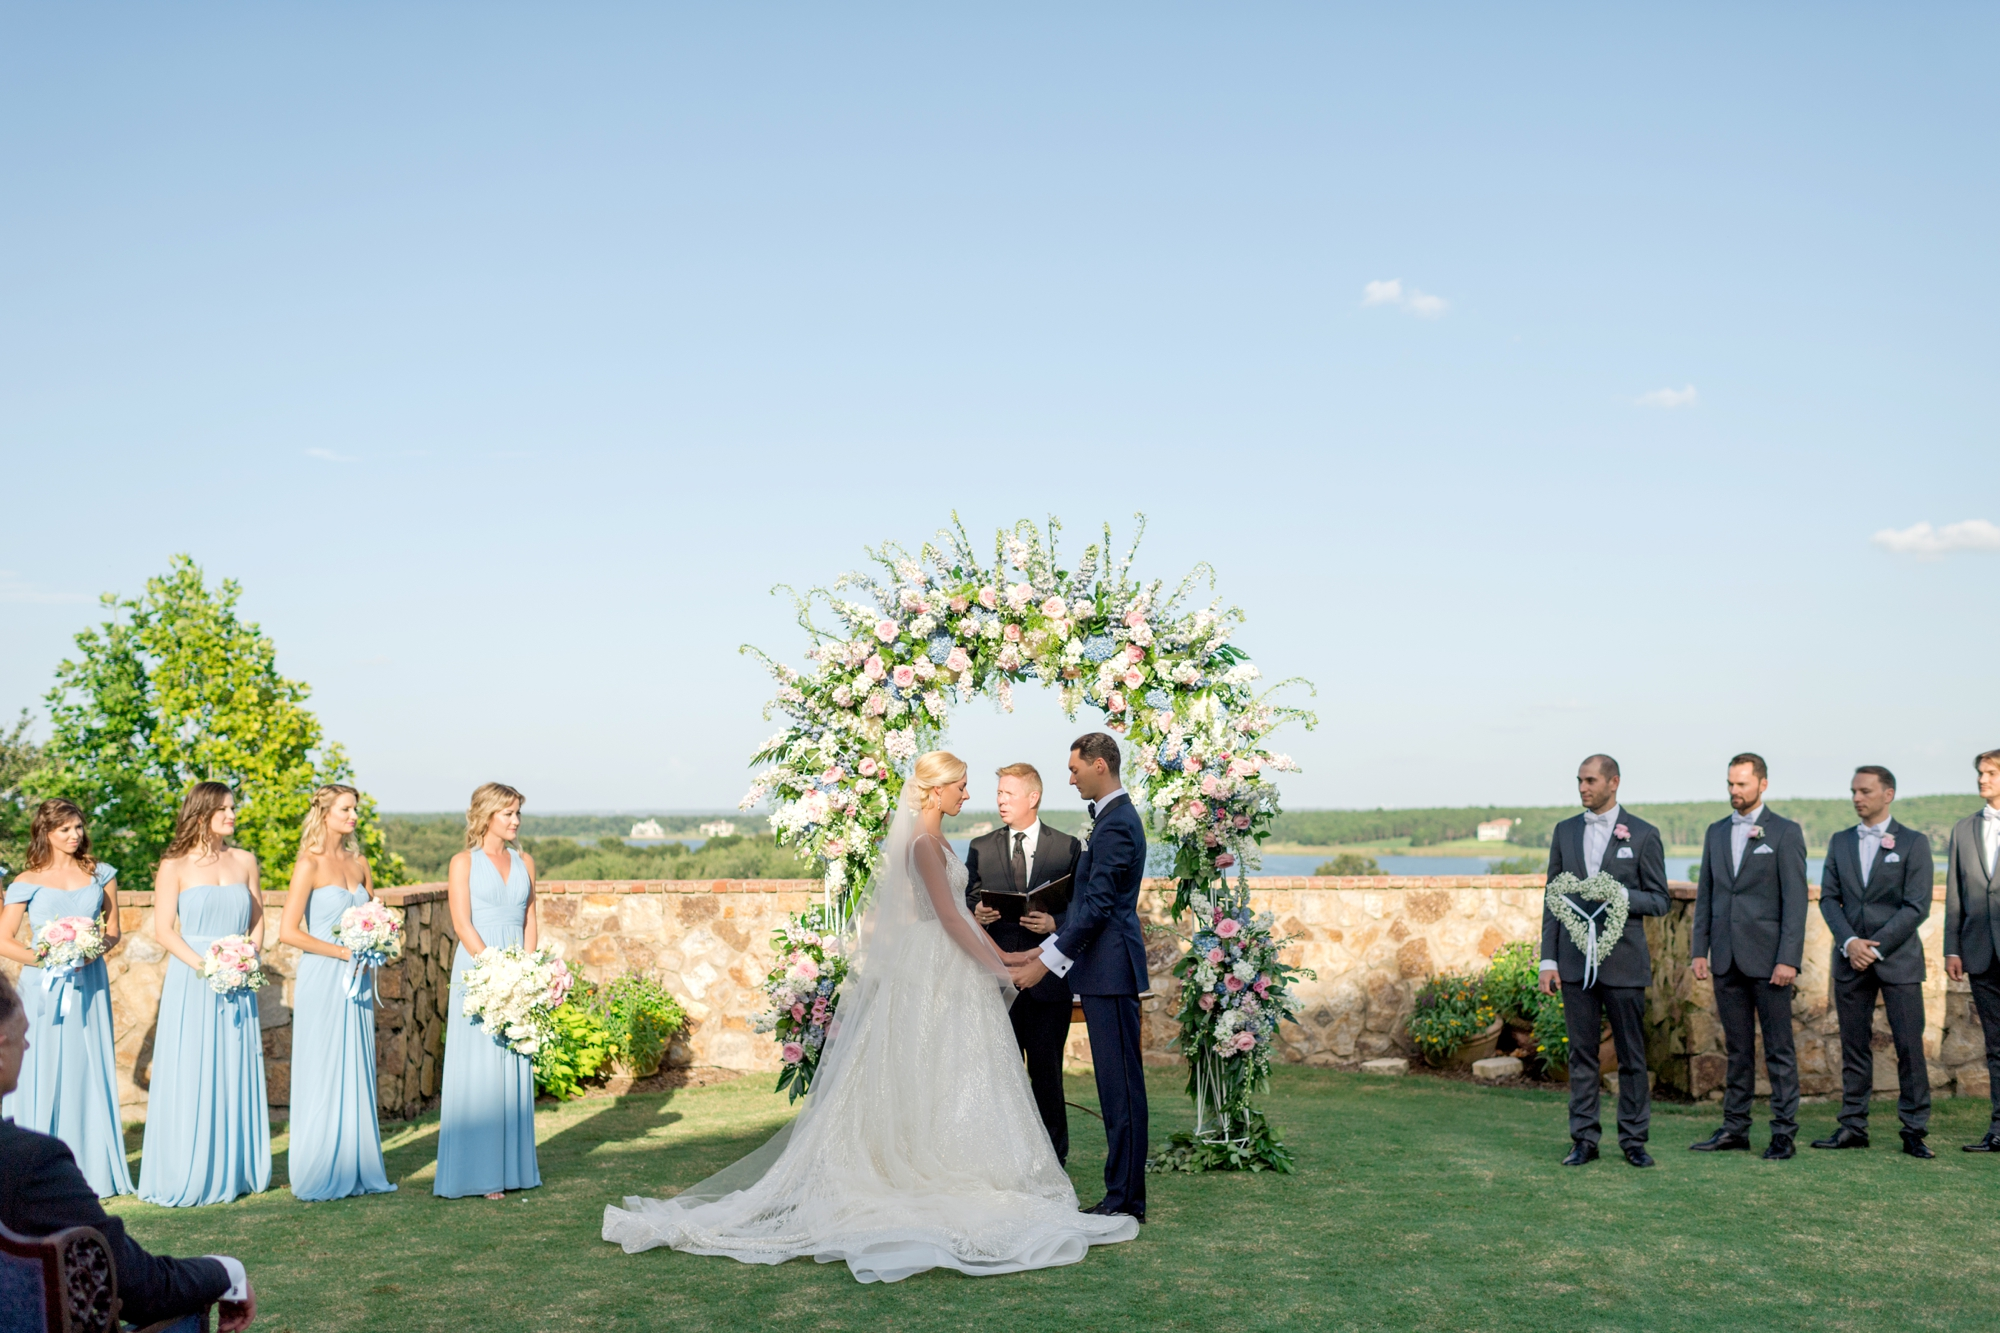 bella collina lawn wedding ceremony